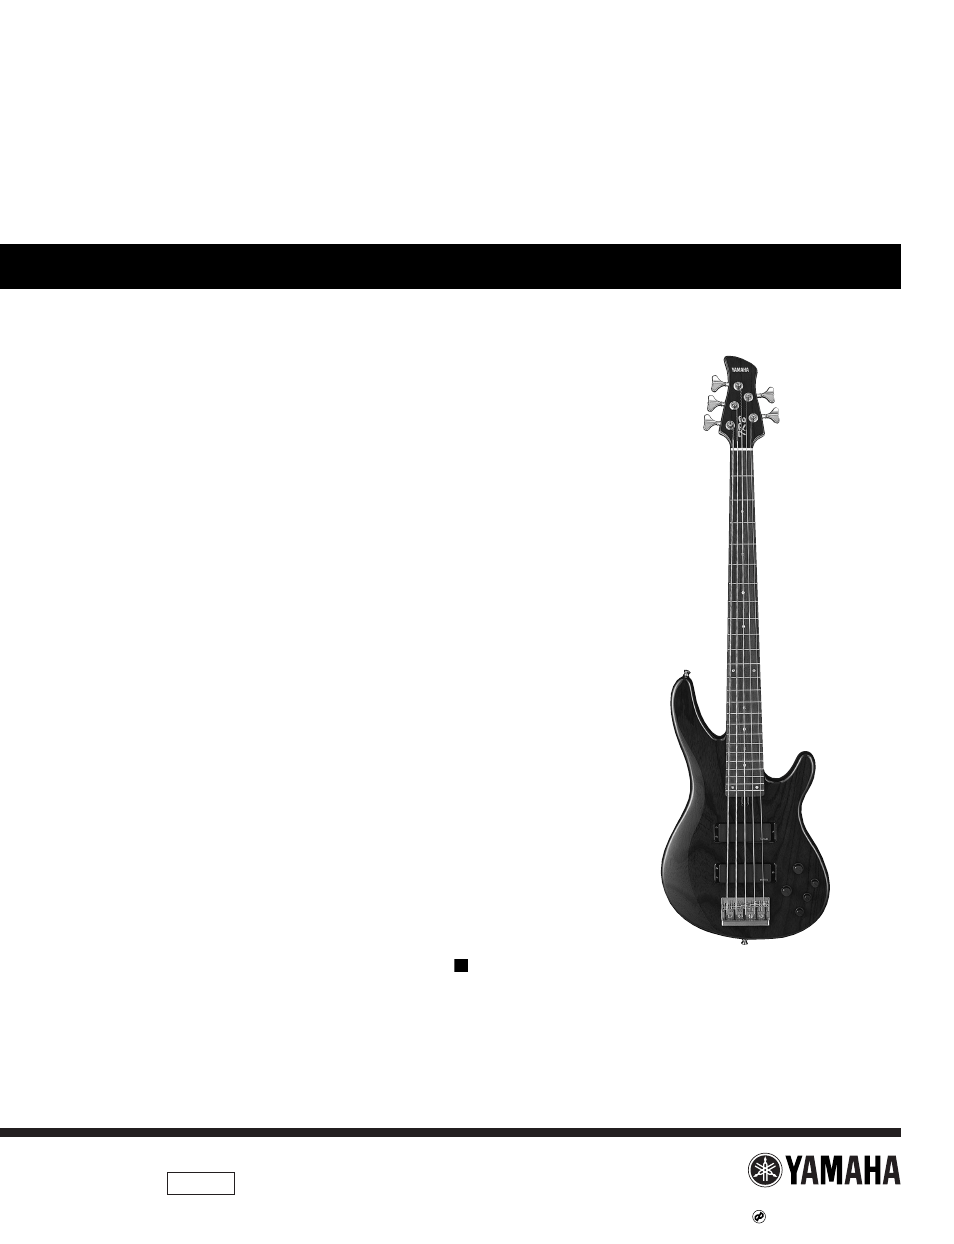 hight resolution of yamaha electric bass trb 5ii user manual 8 pages also for electric bass trb 5iif